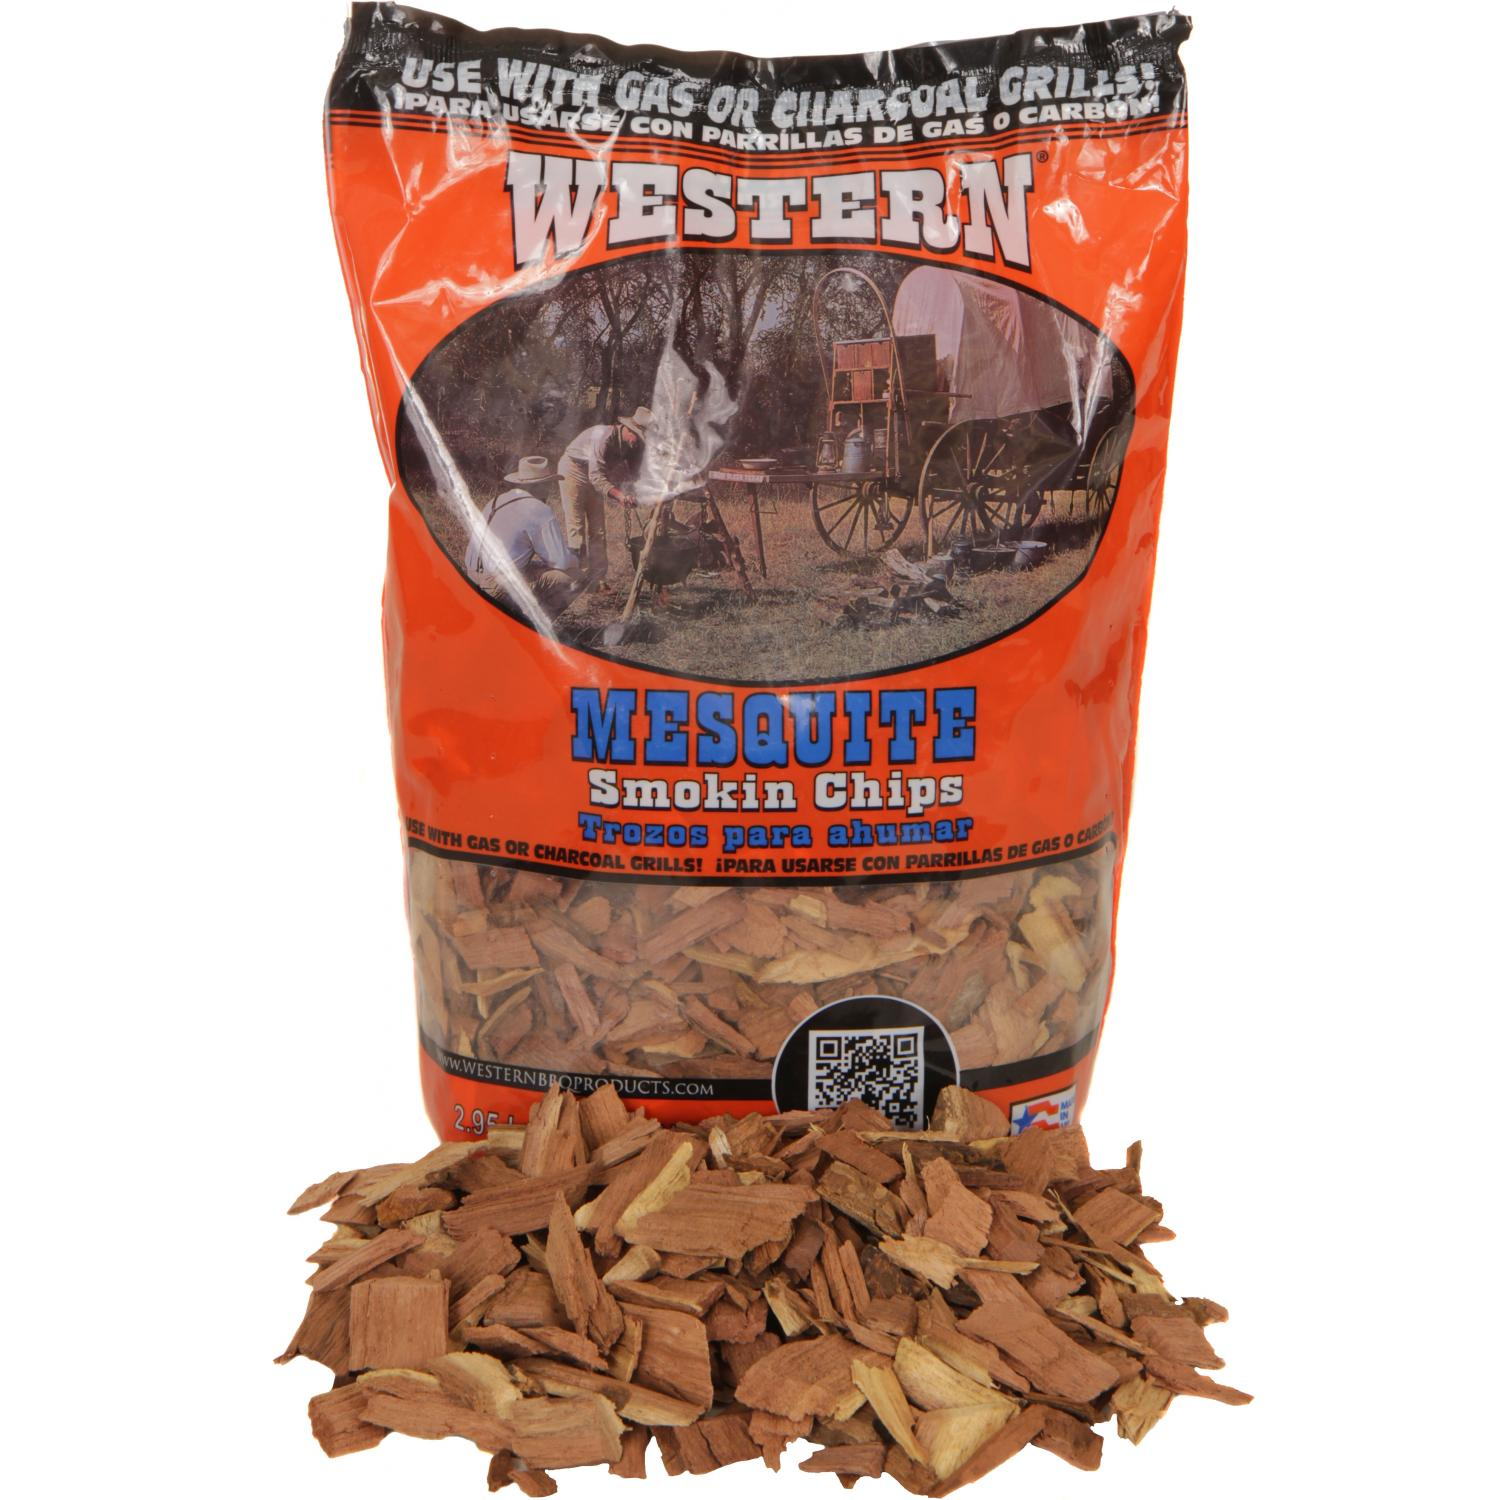 Western Mesquite Bbq Smoking Chips (180 Cu. In.) at Sears.com